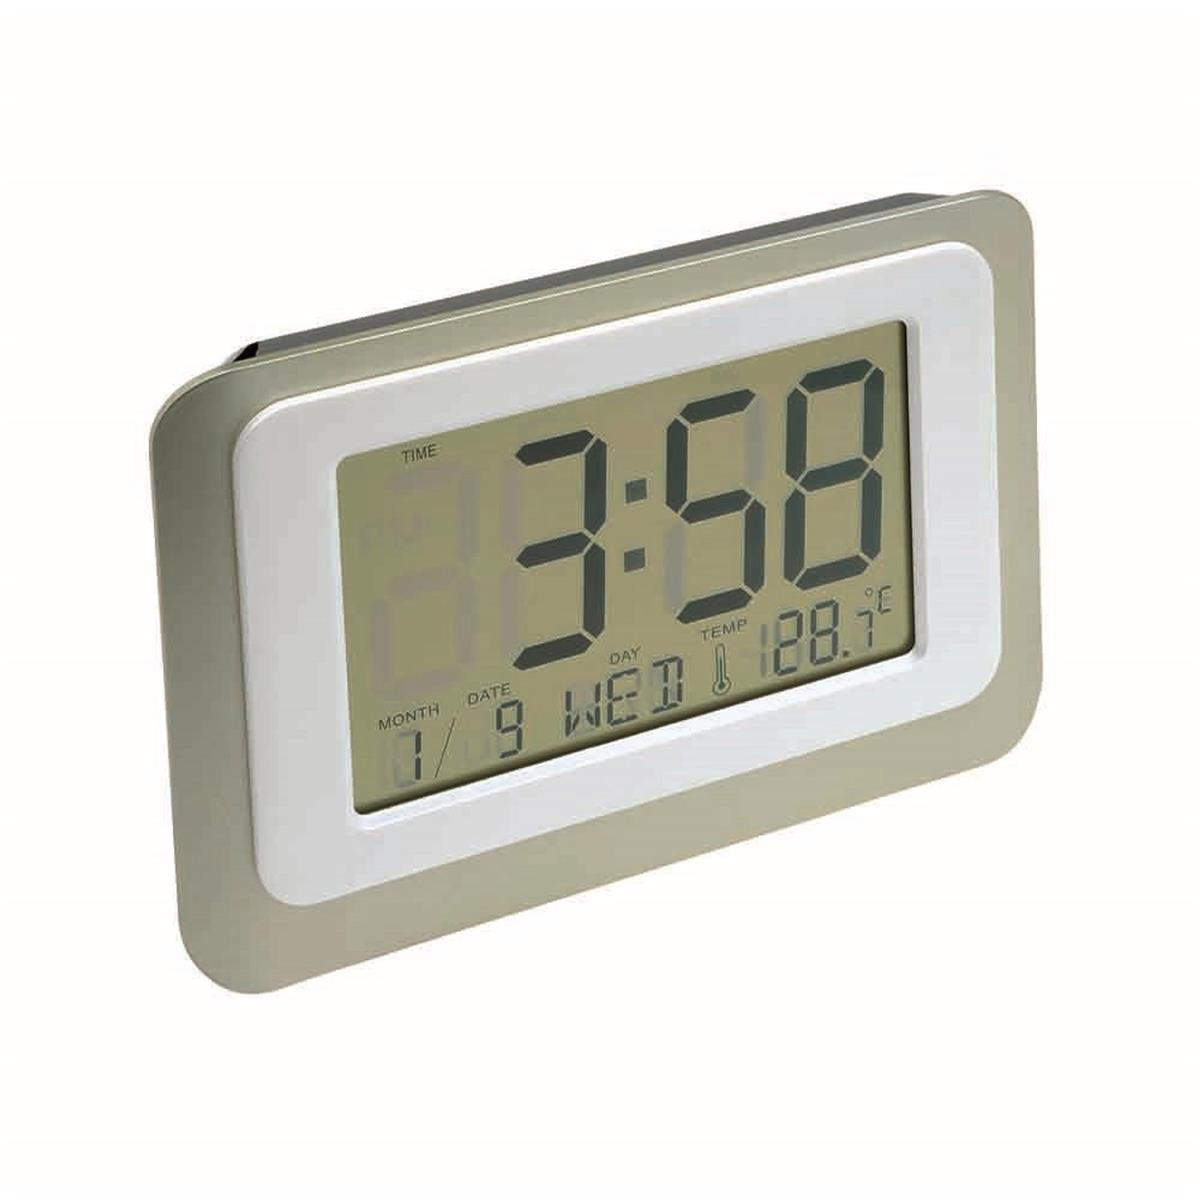 Digital Lcd Clock 12 24 Hour Switch With Thermometer And